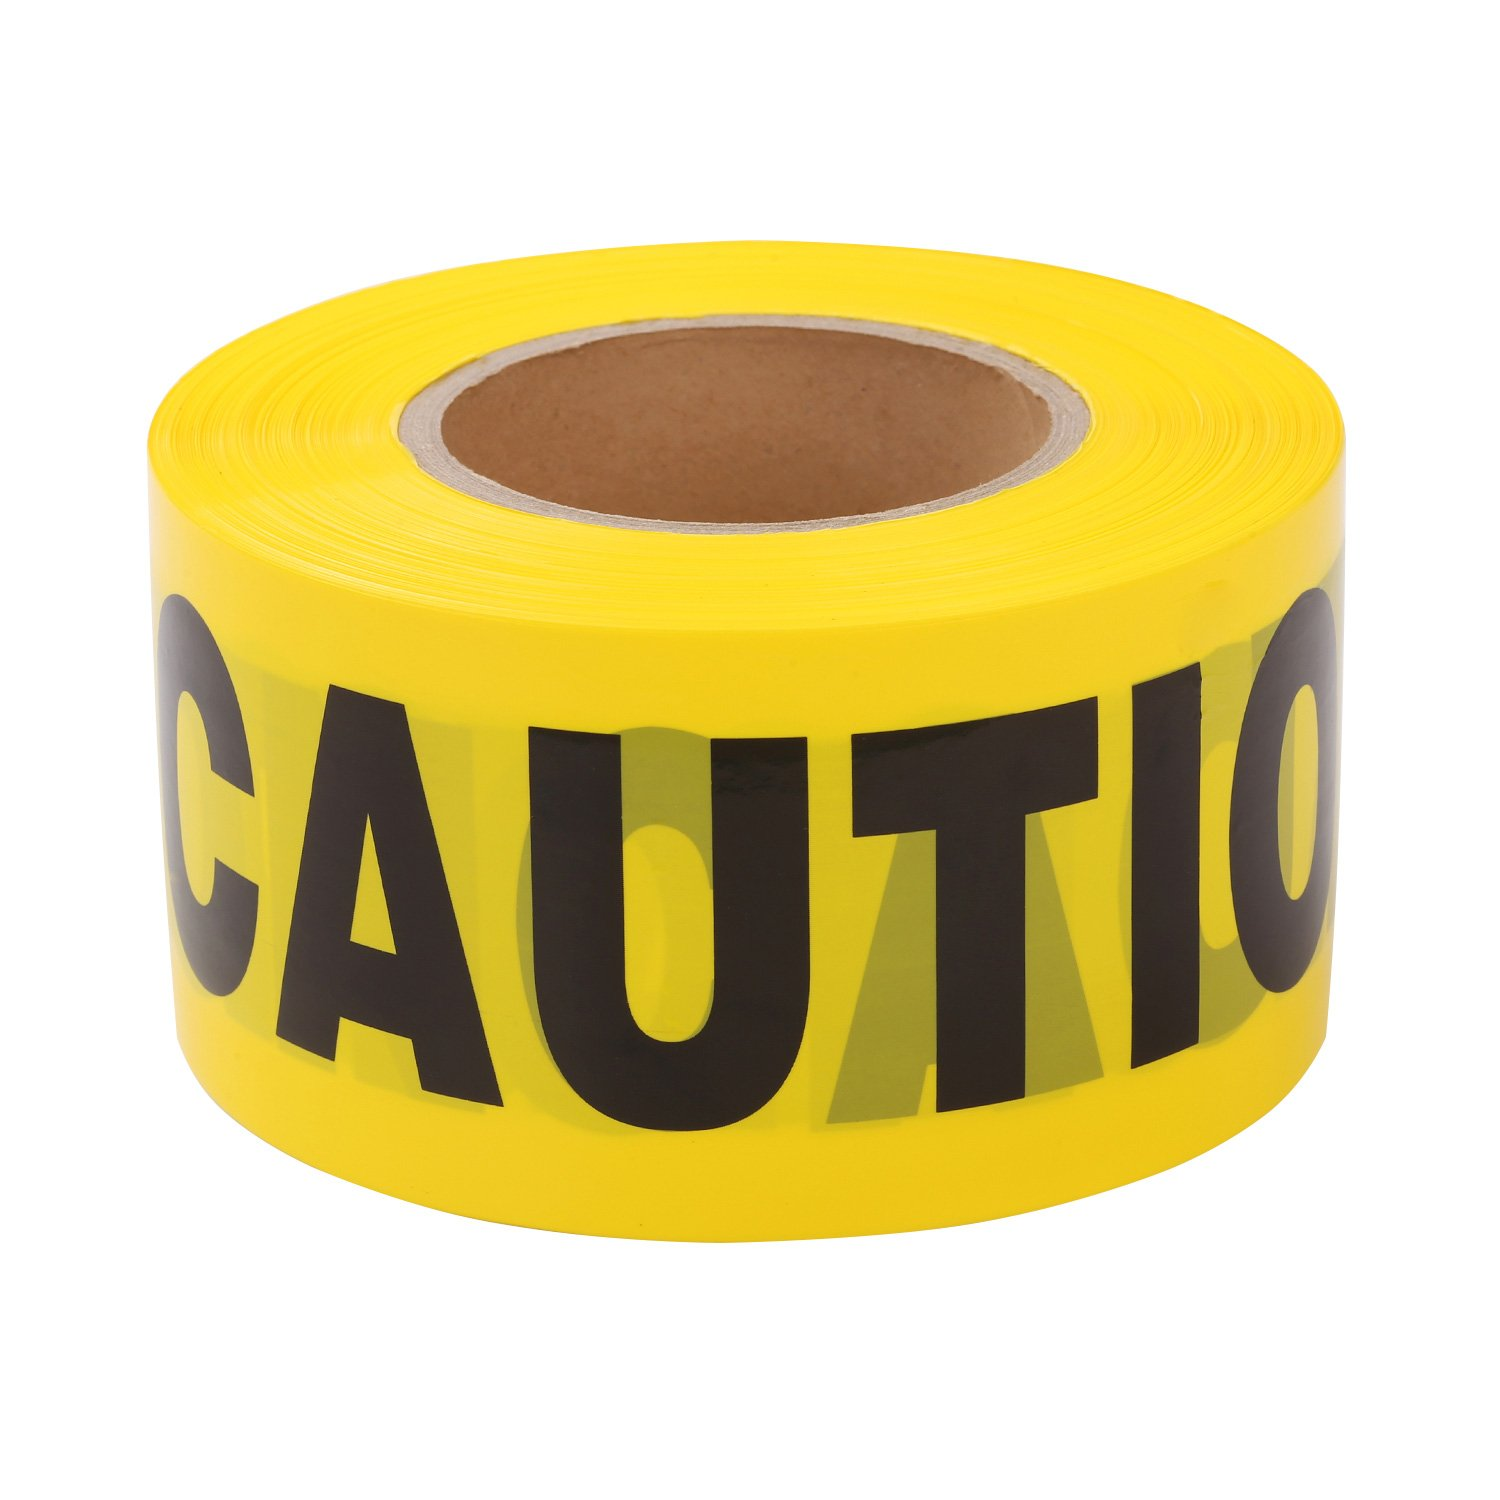 TopSoon Yellow CAUTION Tape Barrier Tape Caution Safety Tape Bright Yellow 3 x 1000 Roll Non-Adhesive